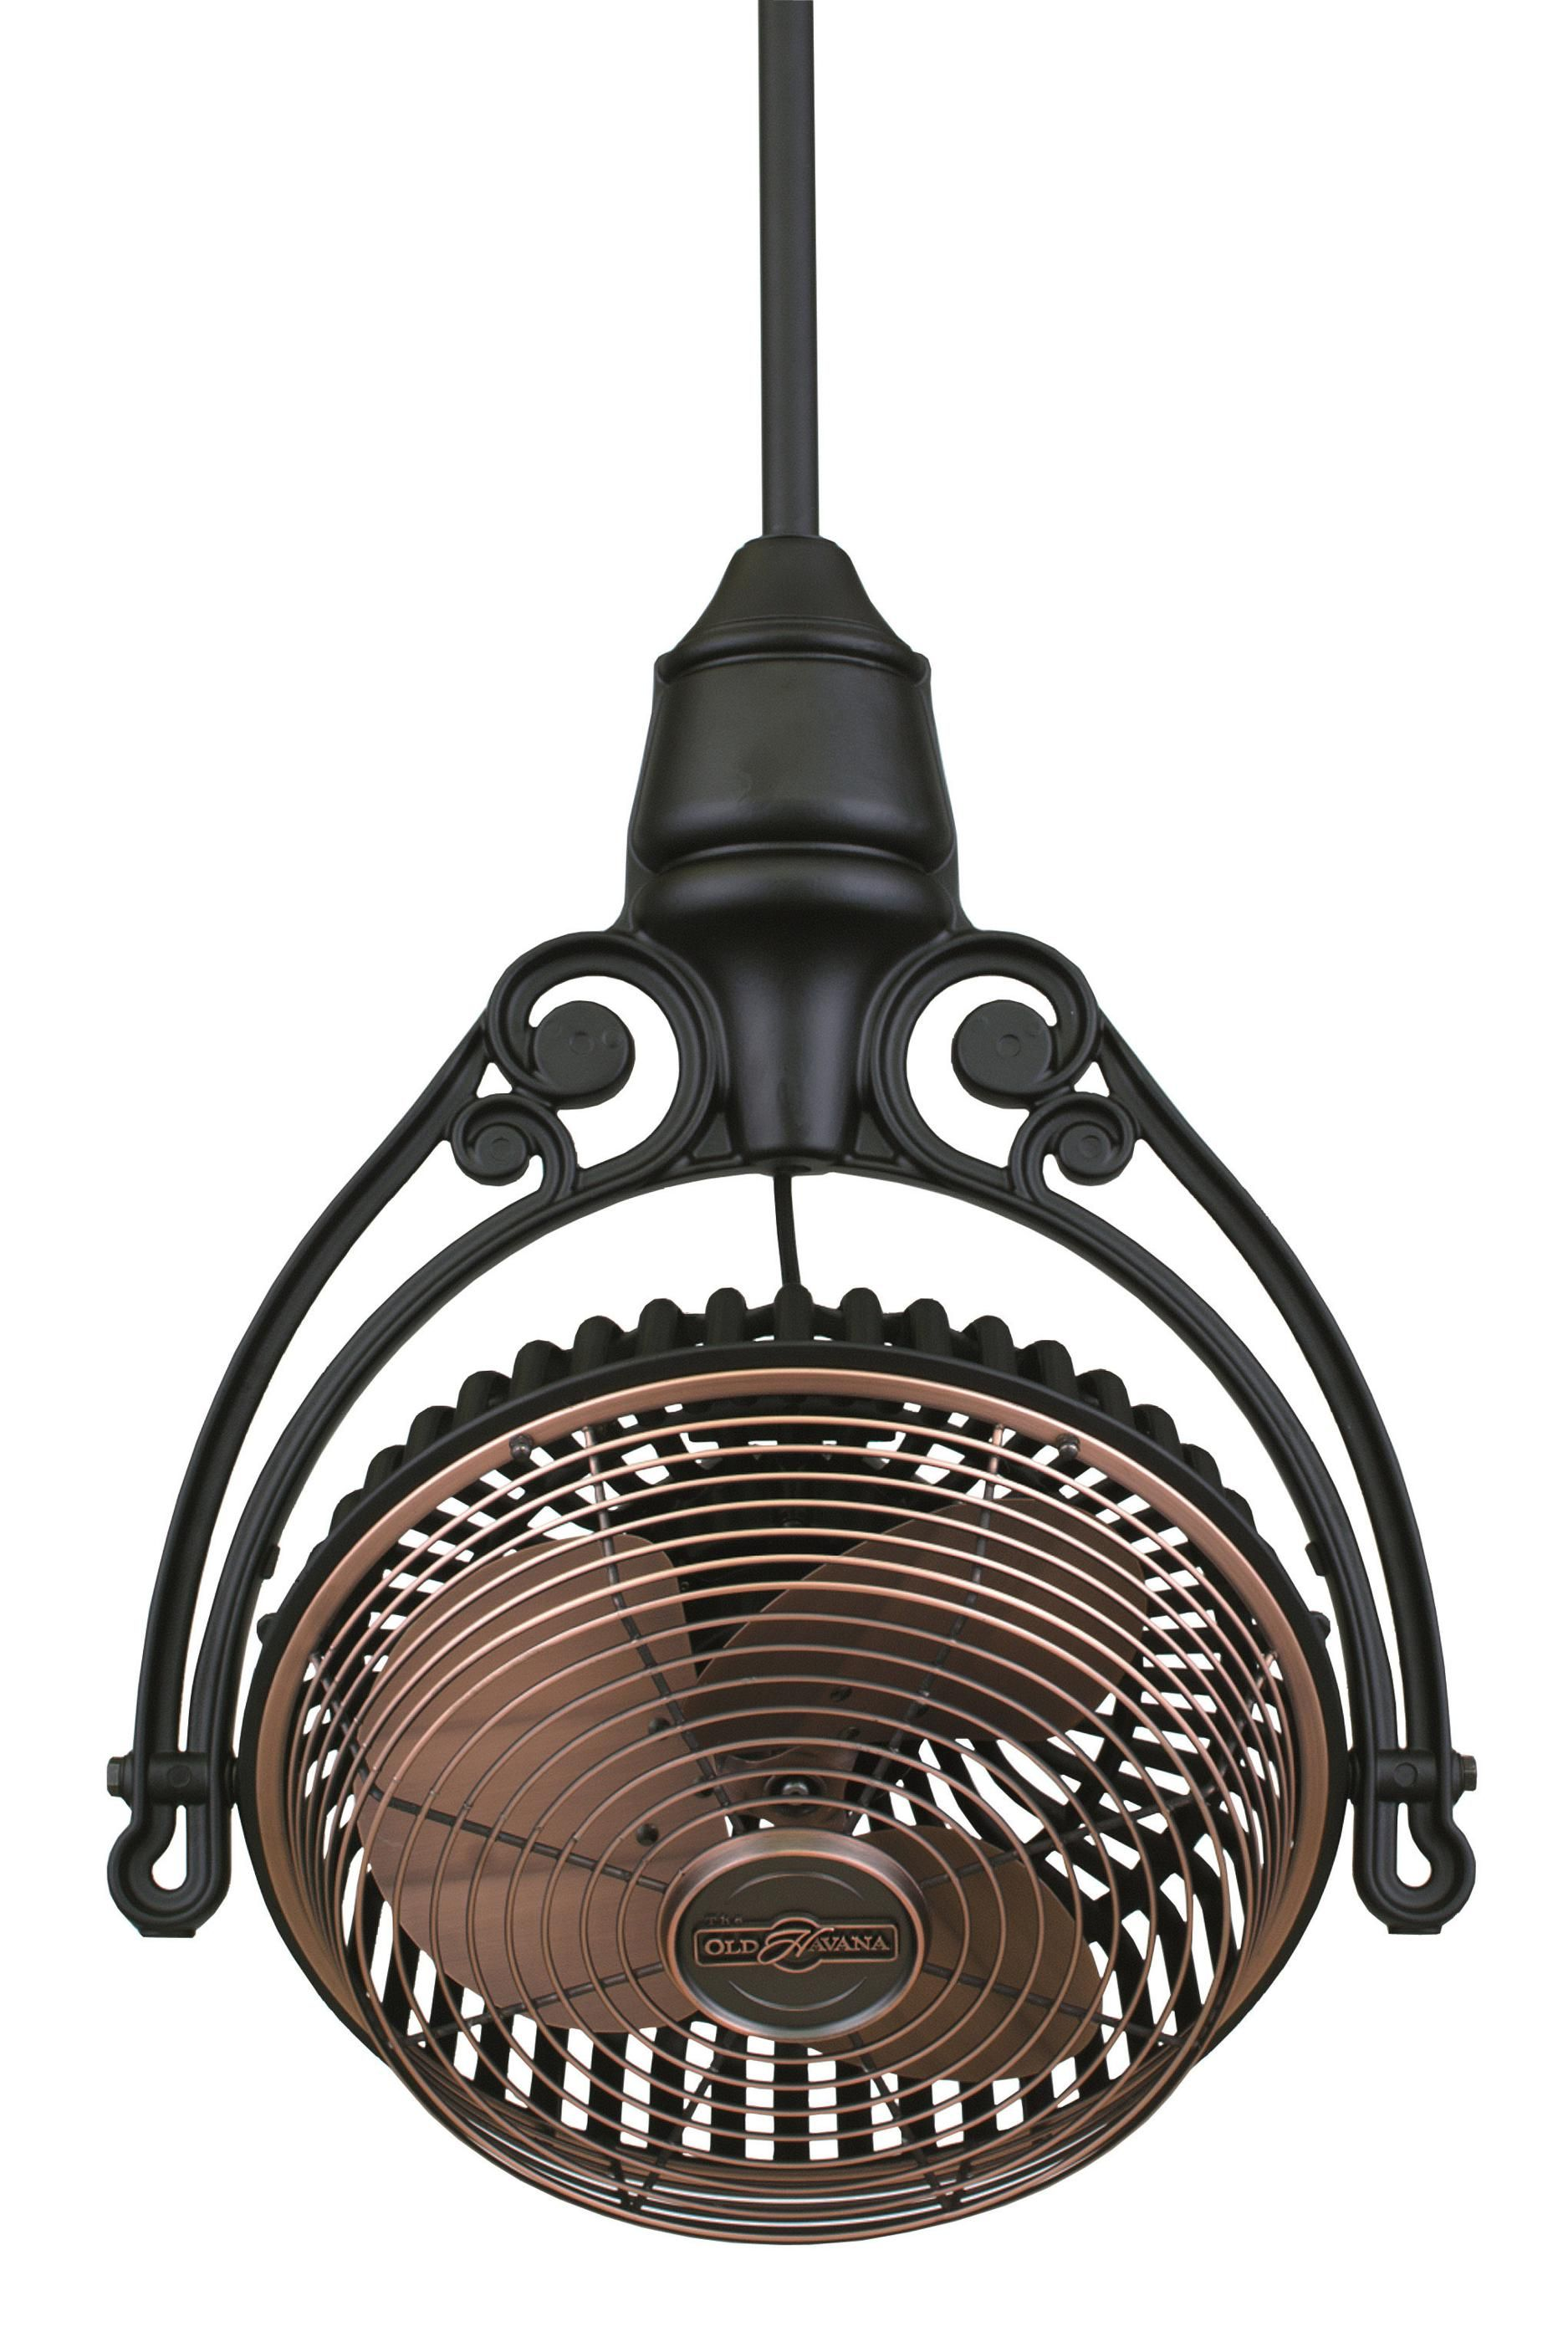 Fanimation Old Havana Ceiling Mount Ceiling Fan Fph210ac Fph81bl In Antique Copper Guaranteed